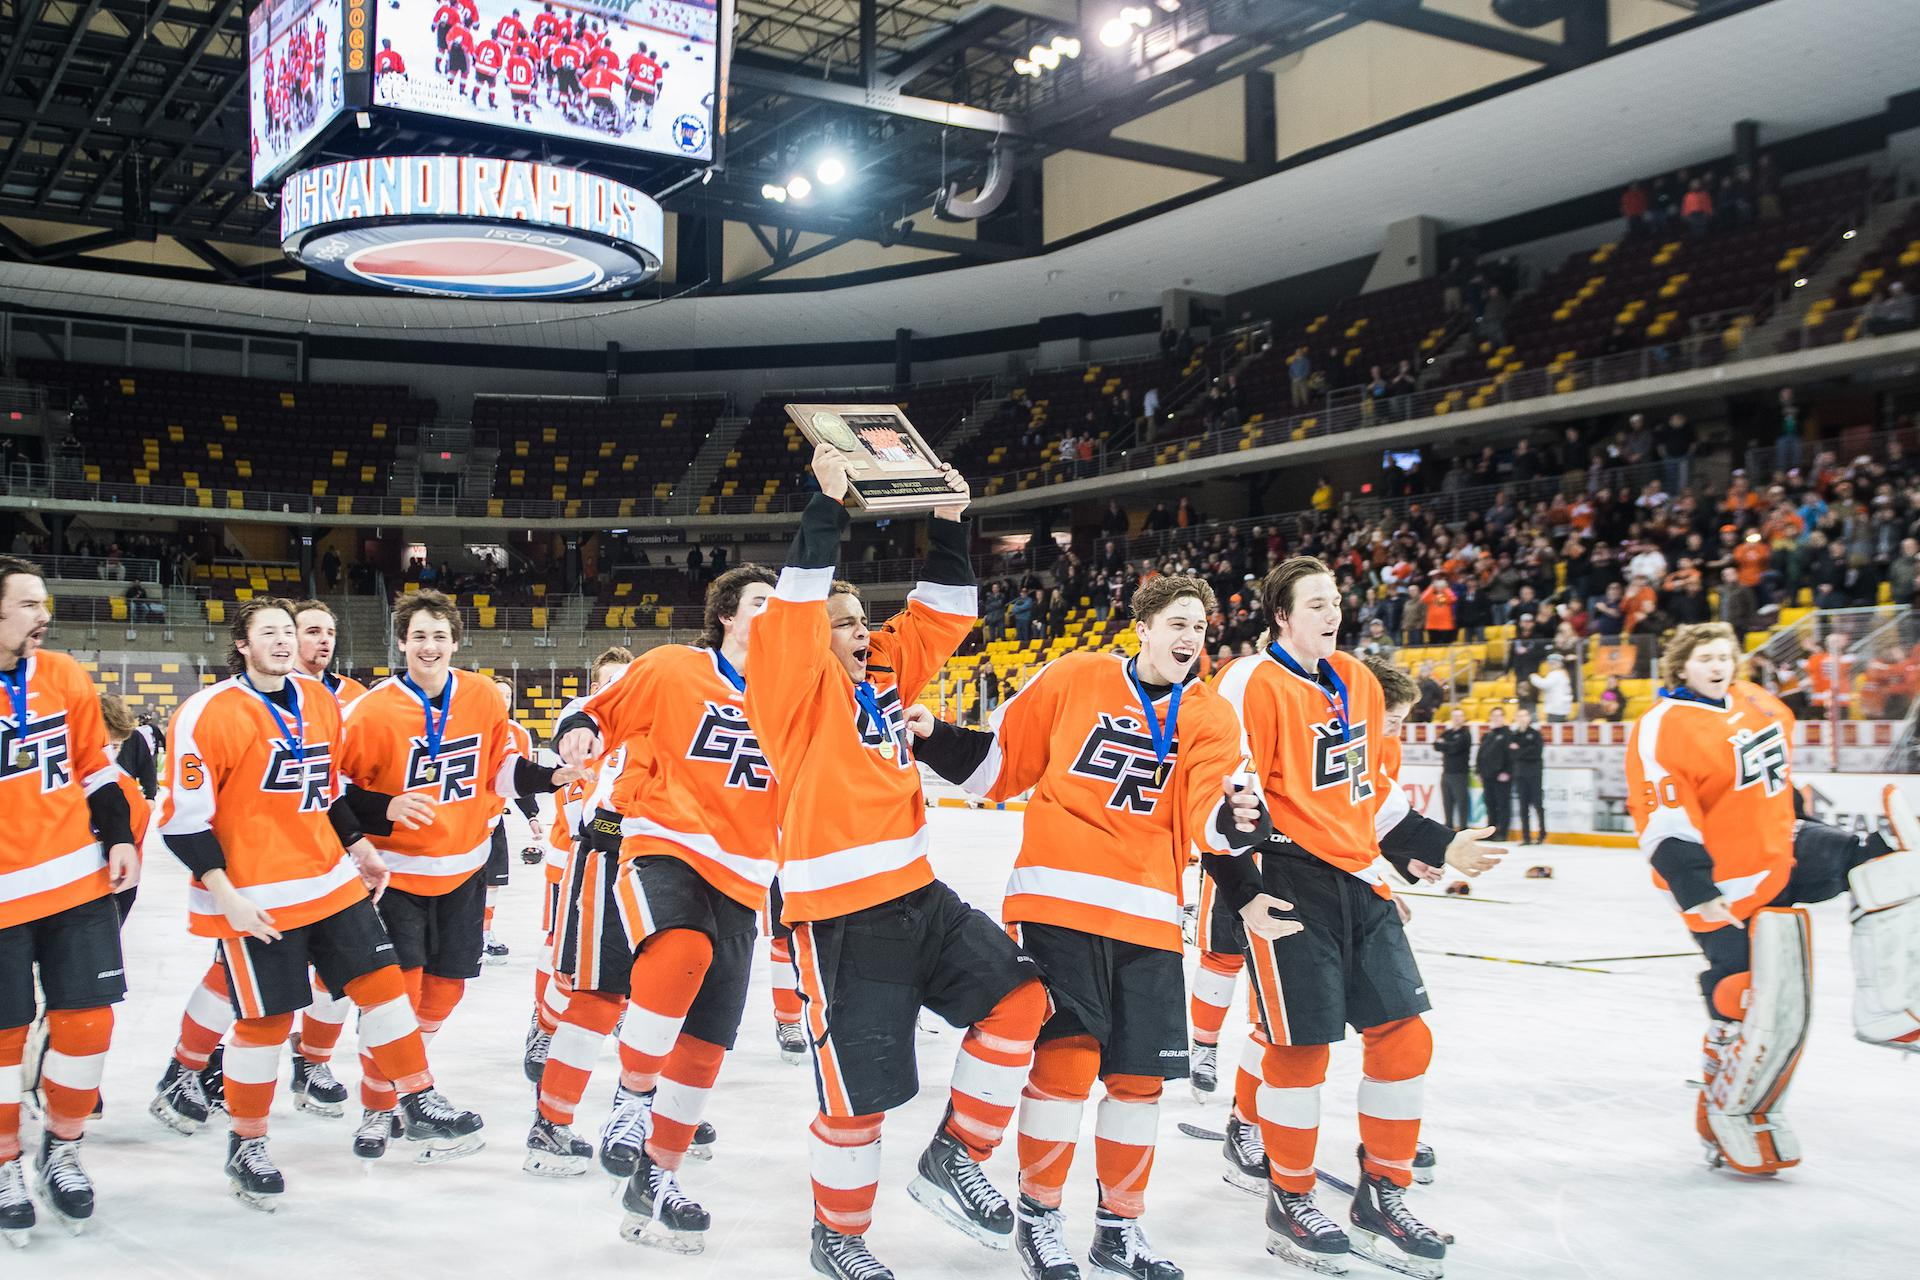 MN H.S.: Moorhead Gets Top Seed As First Wave Of State's Playoff Brackets Released